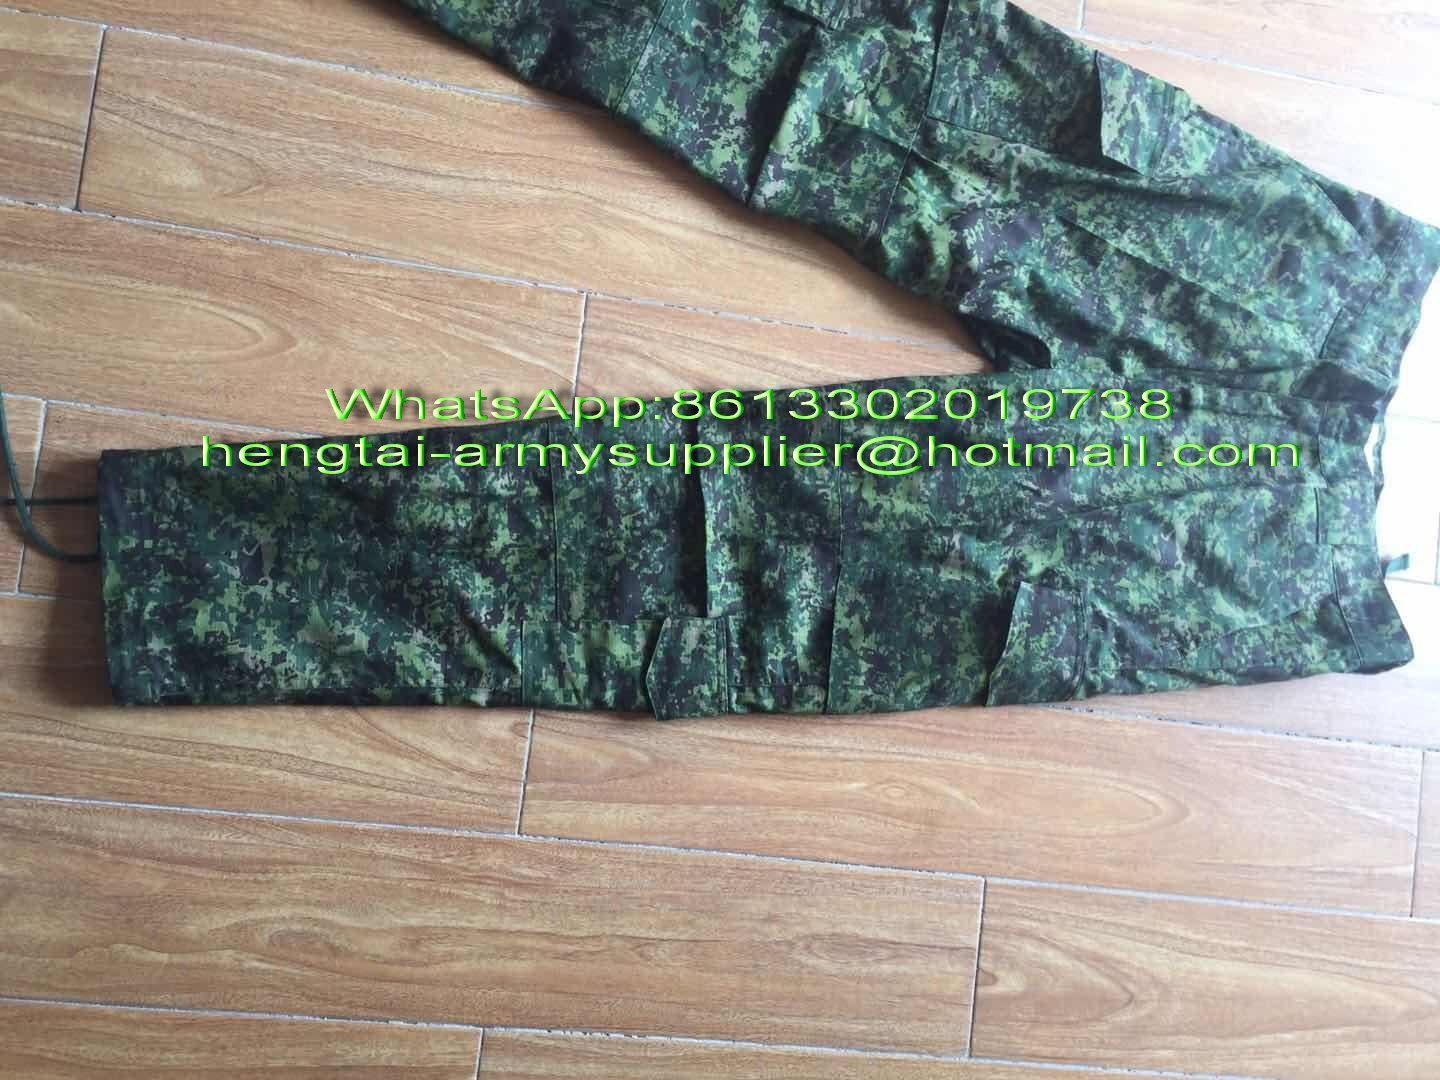 China Military Clothing,Boot,Body Armor,Military Tent,Manufacturer